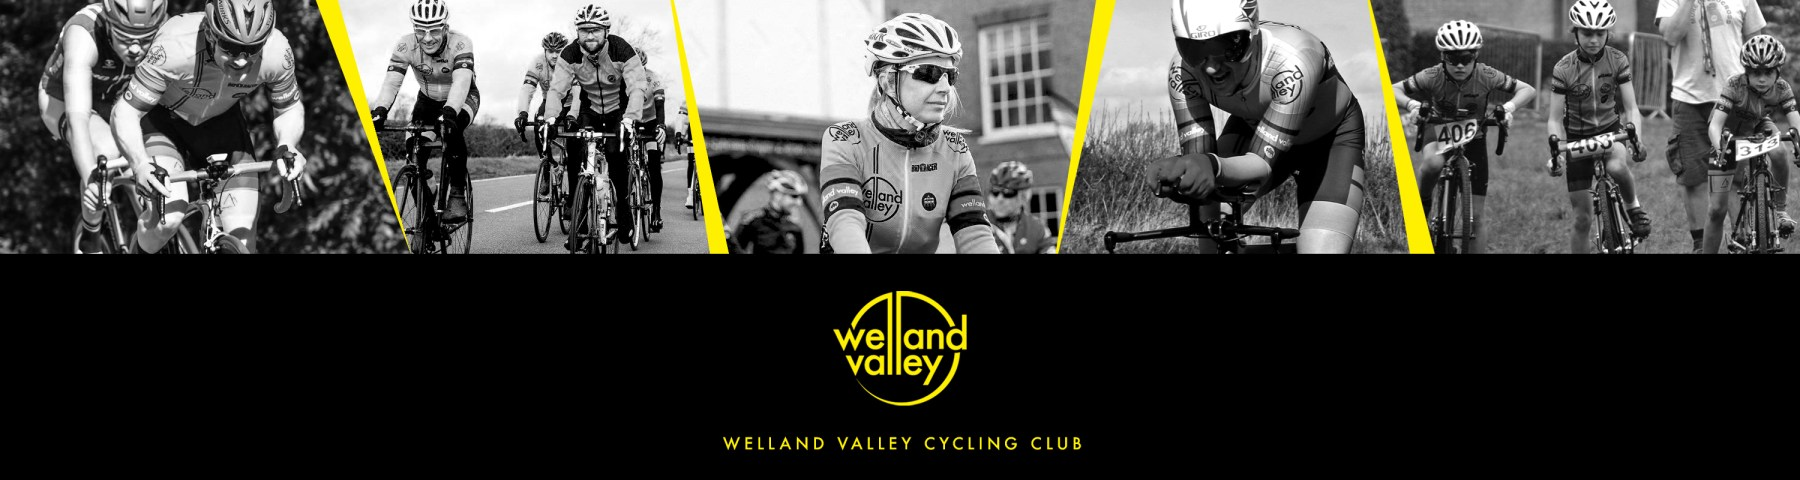 Welland Valley Cycling Club website header